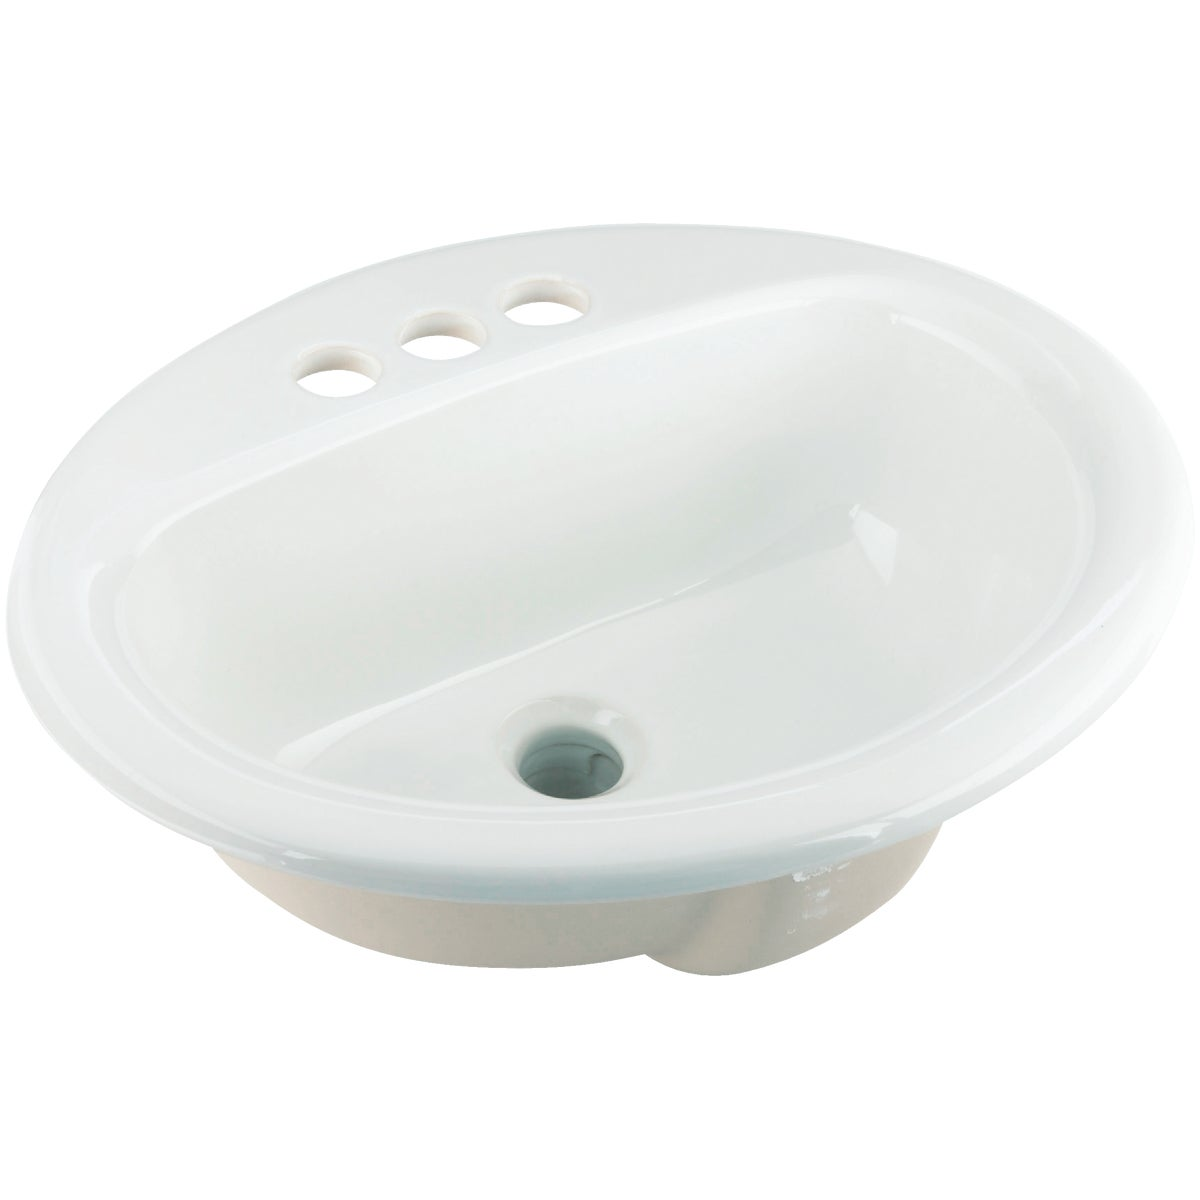 WHT OVAL LAVATORY BOWL - 251410000 by Mansfield Plumbing